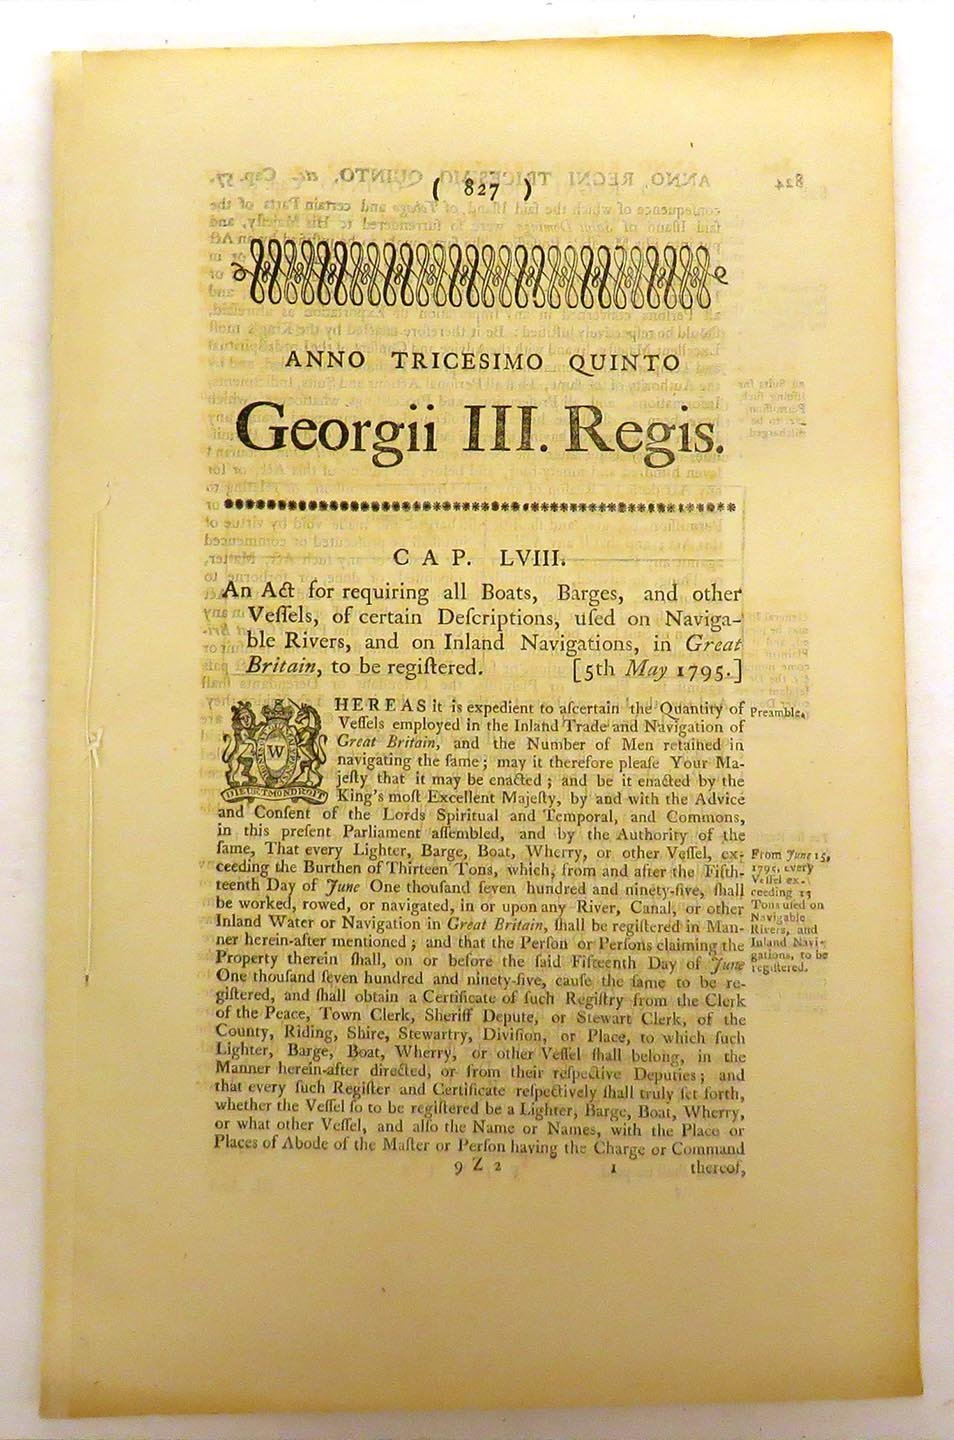 An Act for requiring all Boats, Barges, and Other Bessels, of certain Descriptions, used on Navigable Rivers, and on Inland navigations, in Great Britain, to be registered